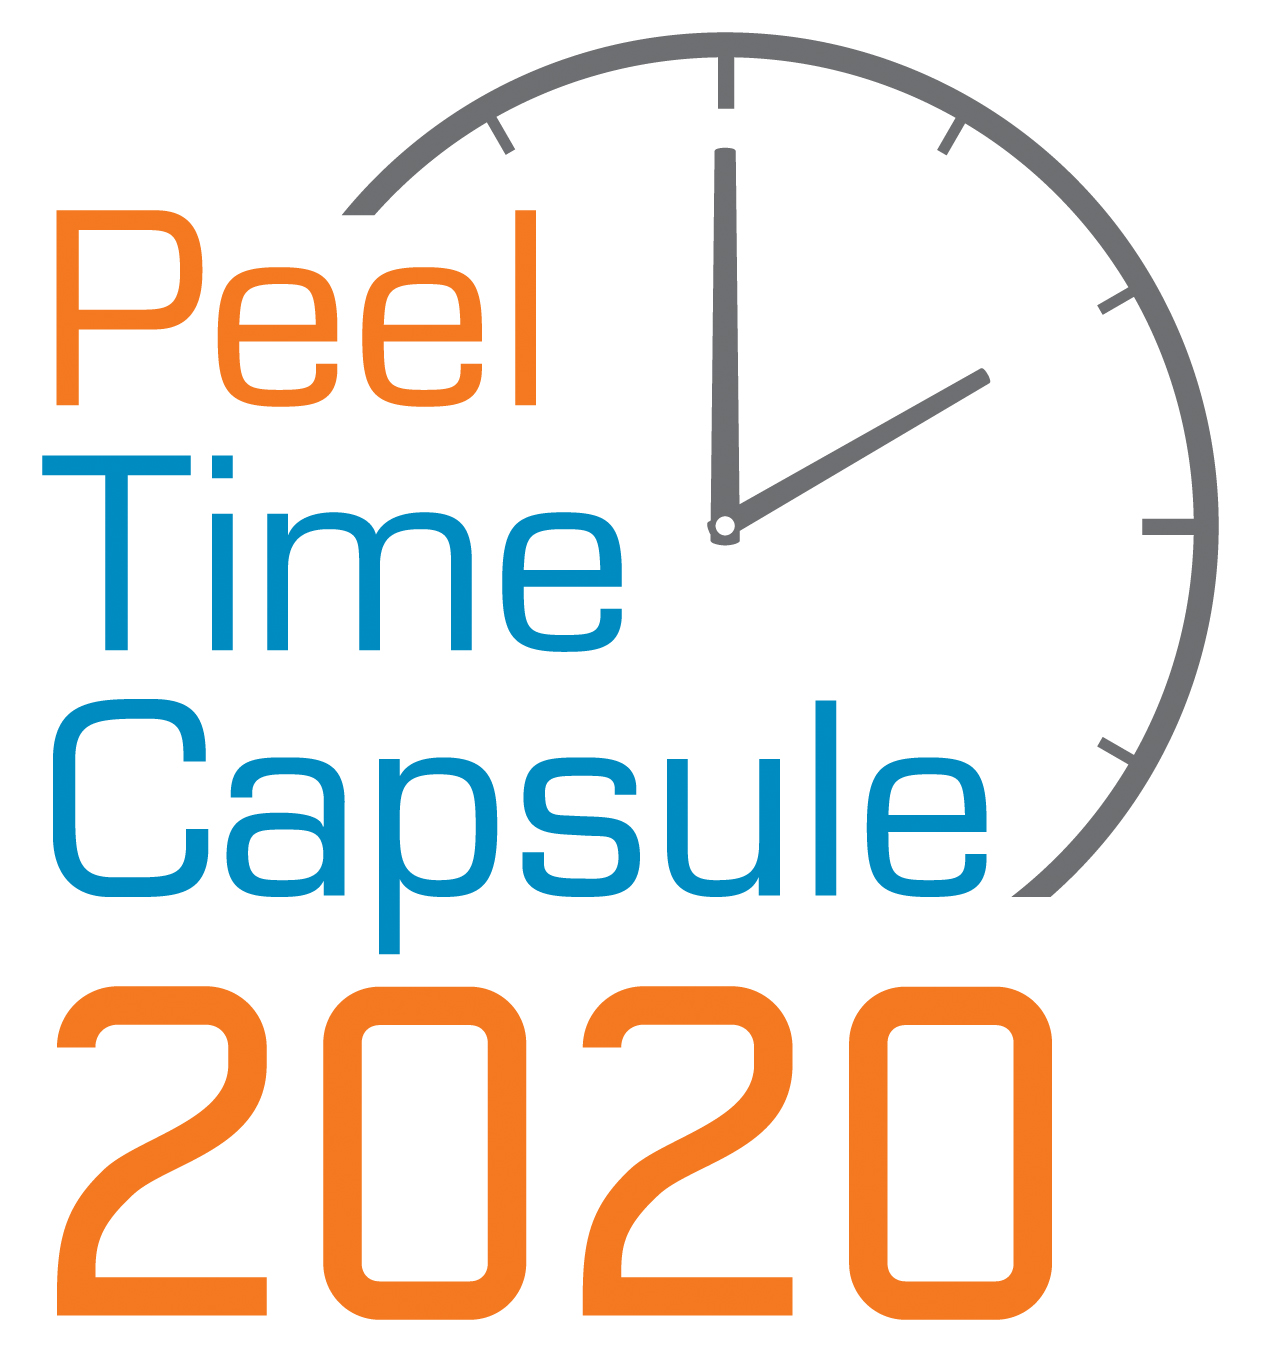 Peel Time Capsule Project Graphic